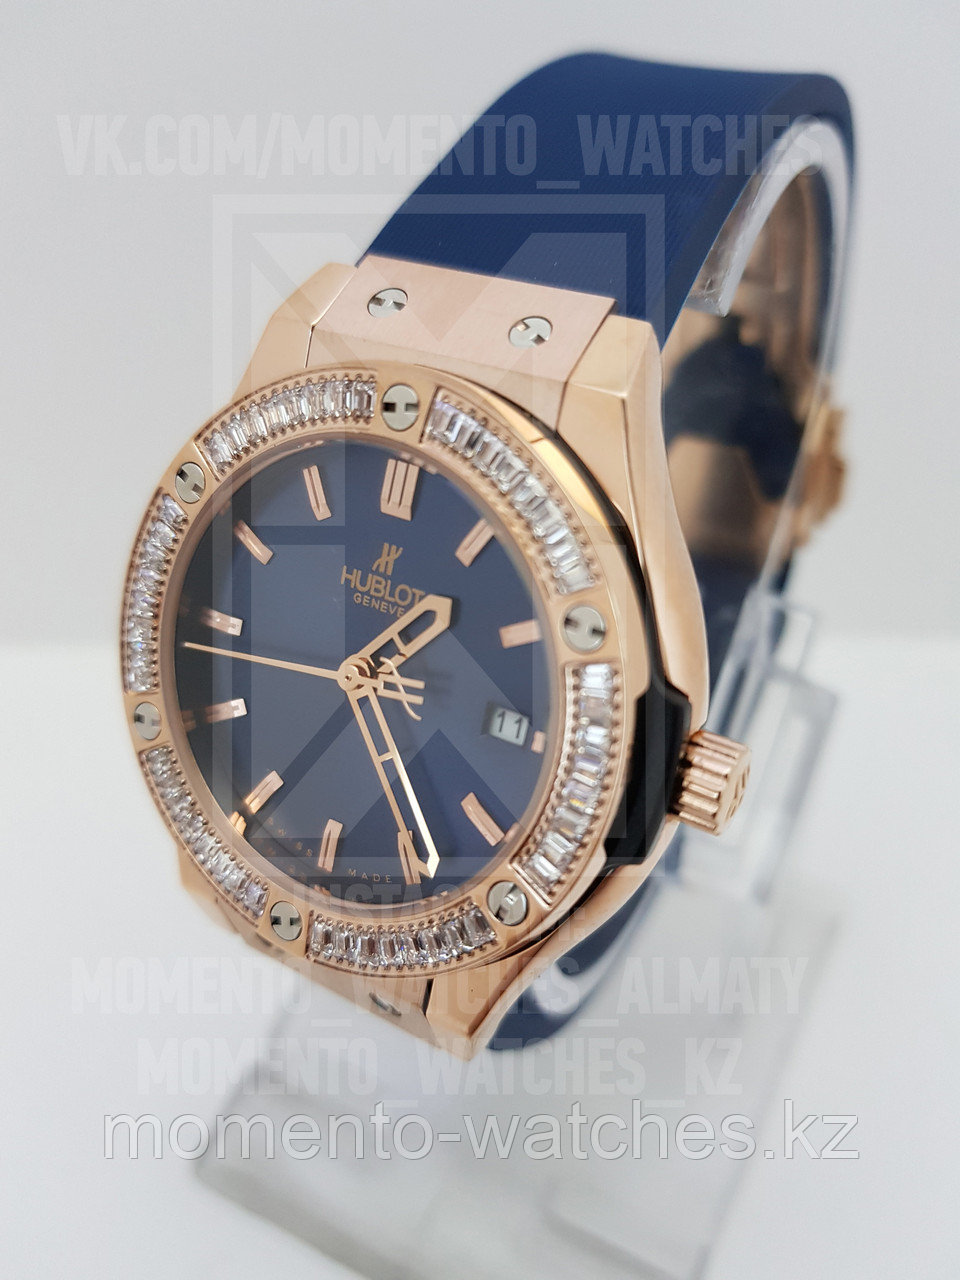 Hublot Woman Watch